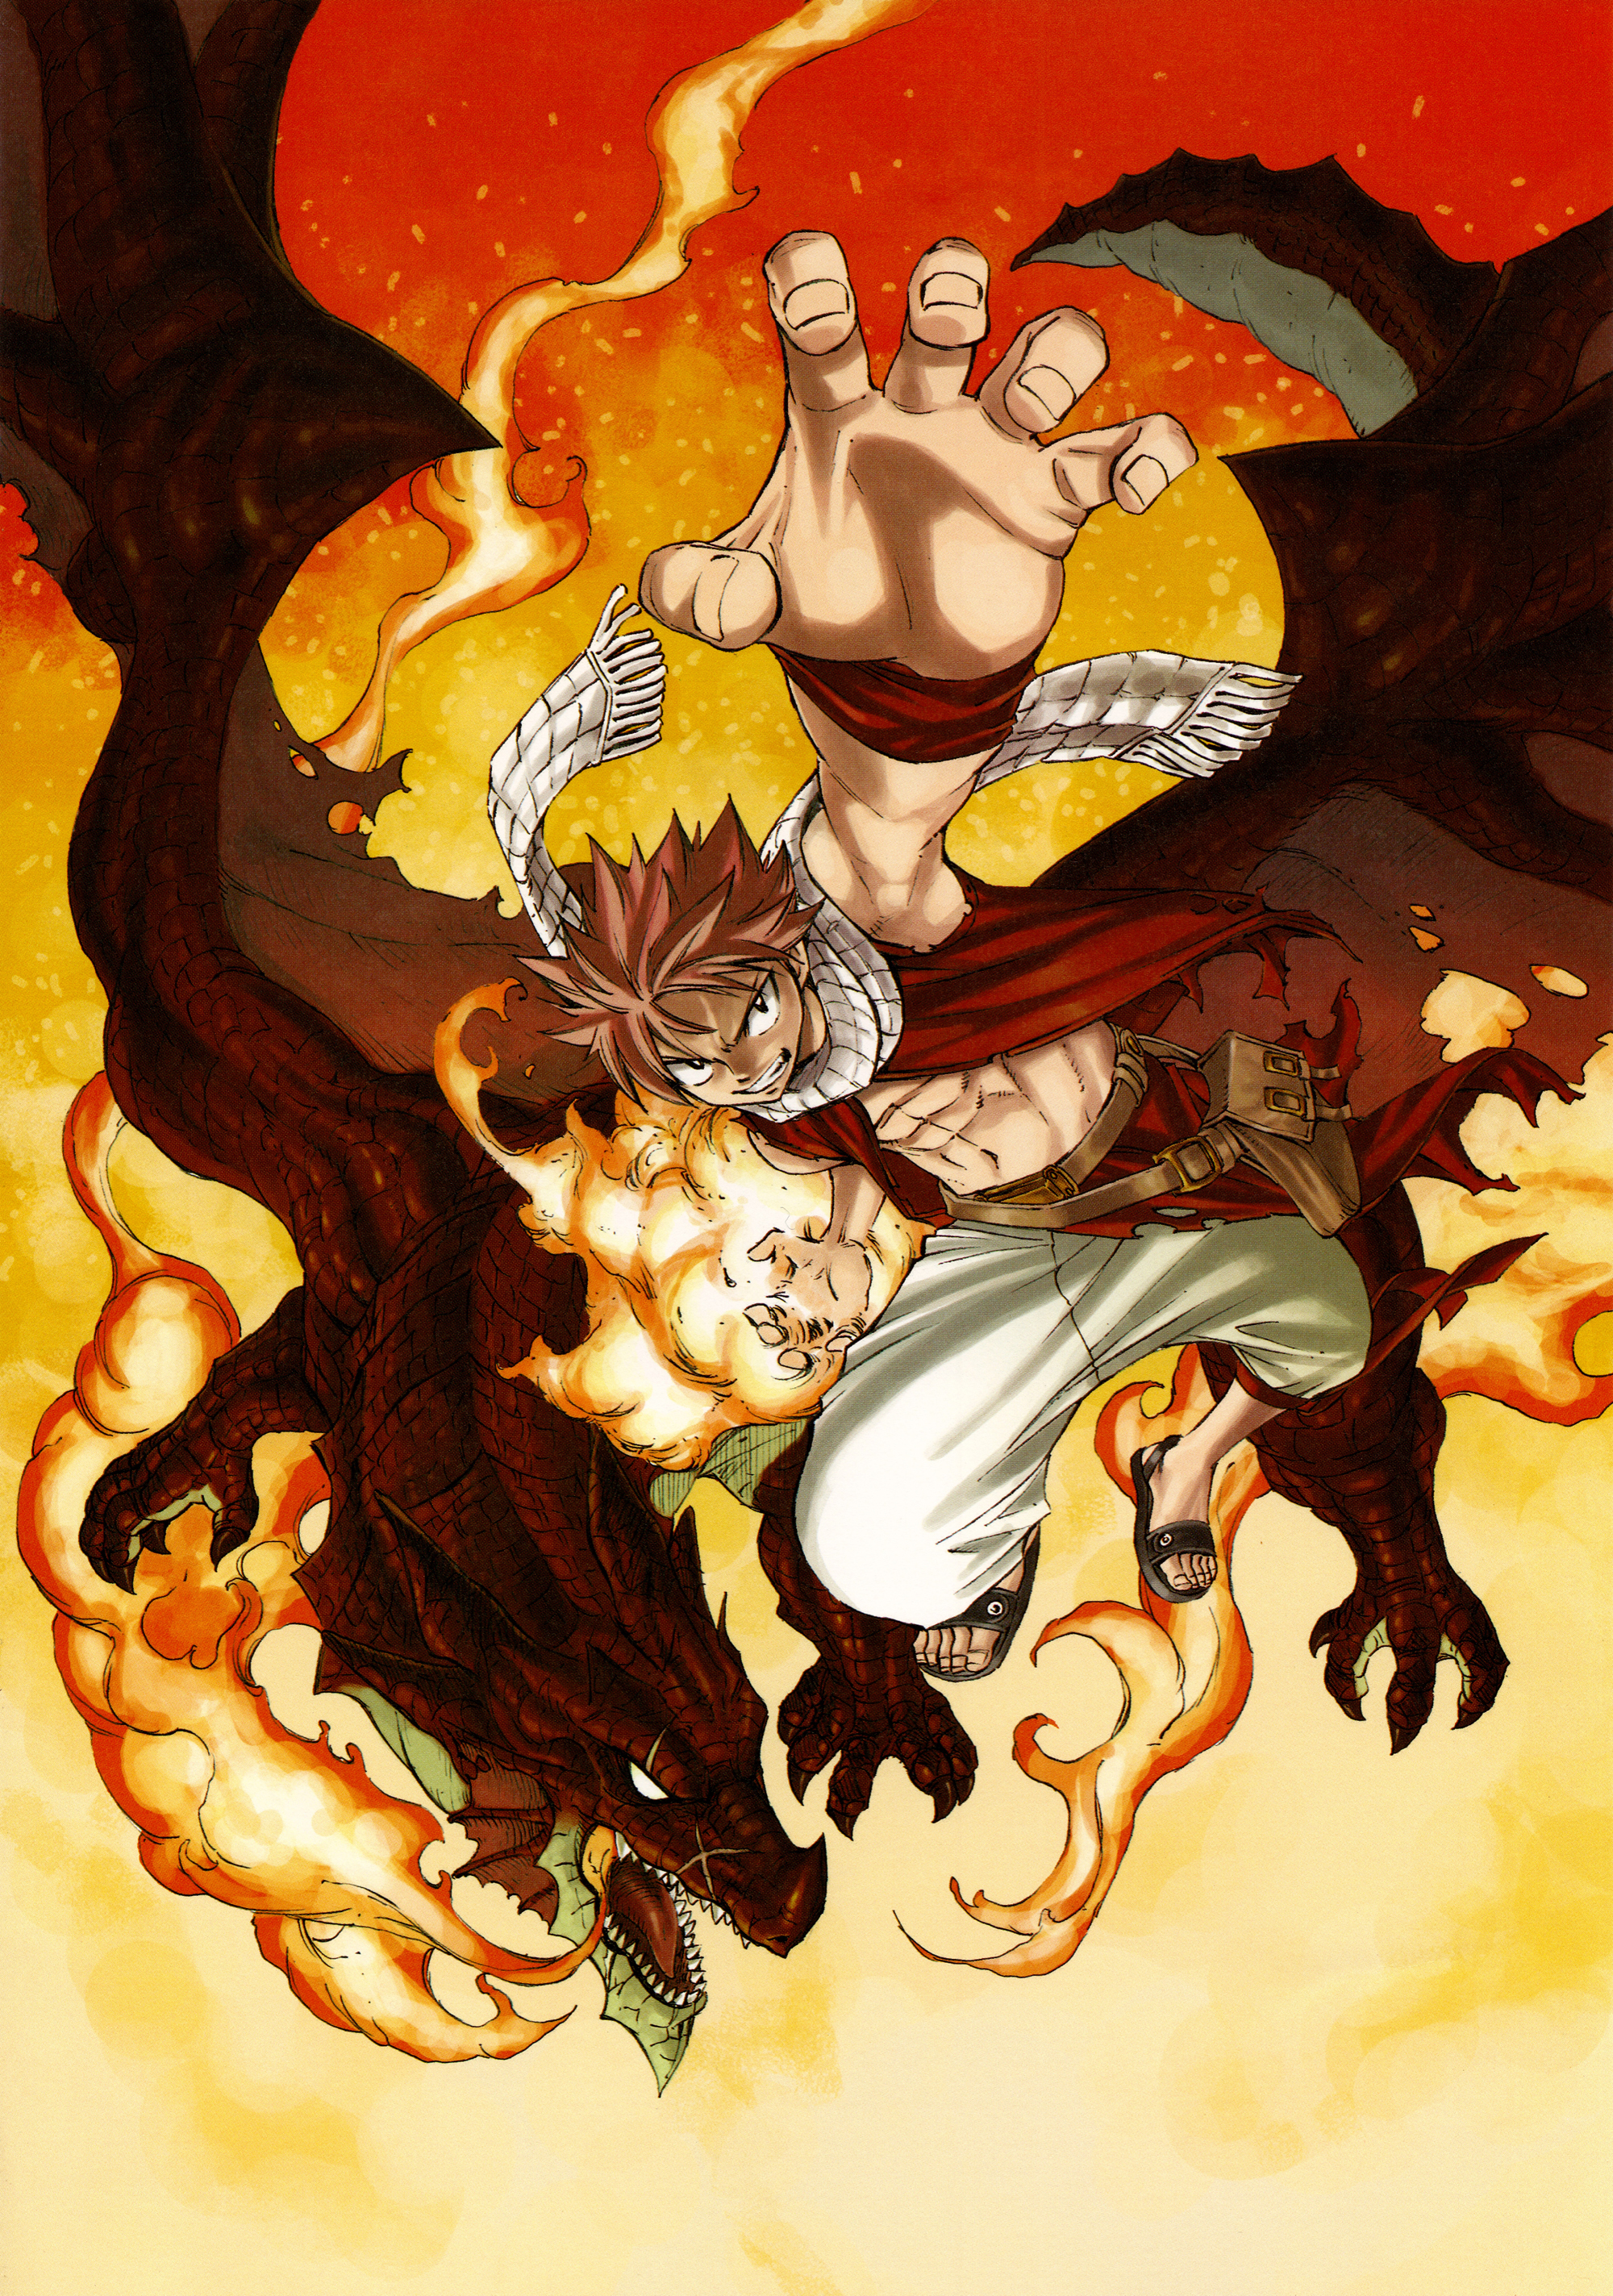 Image natsu and igneel fantasia 02 fairy tail wiki fandom powered by wikia - Fairy tail fantasia ...